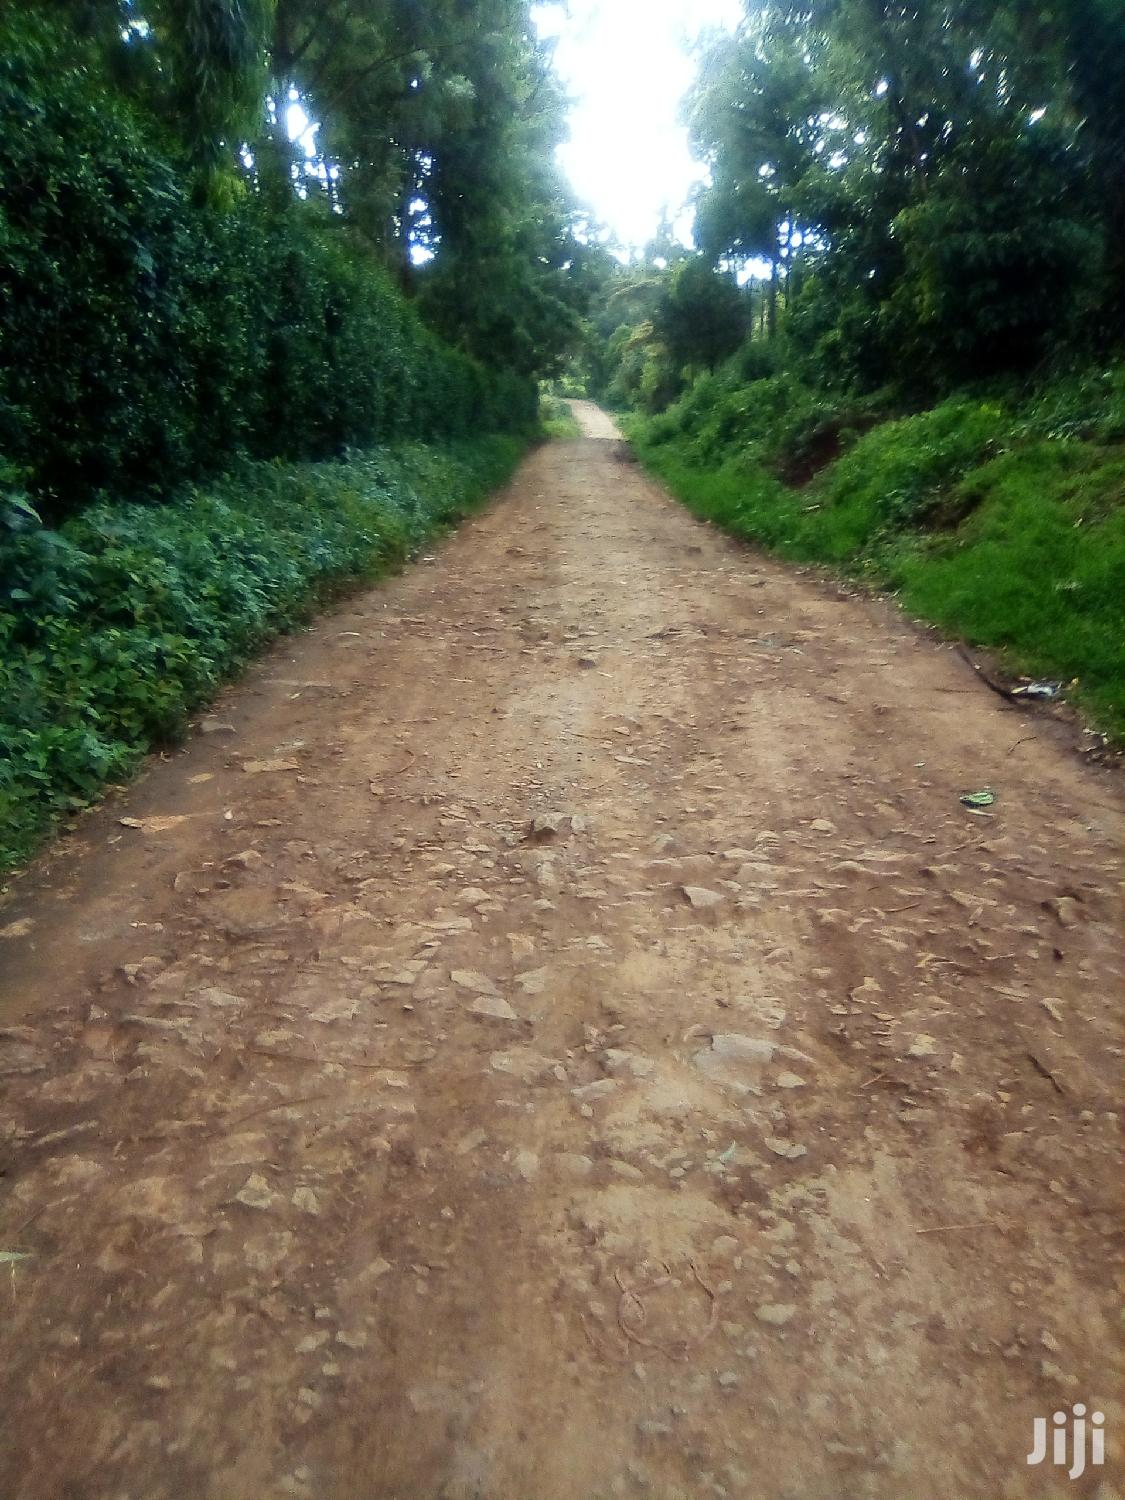 Kikuyu Ondiri 1/4 Acre Plot | Land & Plots For Sale for sale in Kikuyu, Kiambu, Kenya